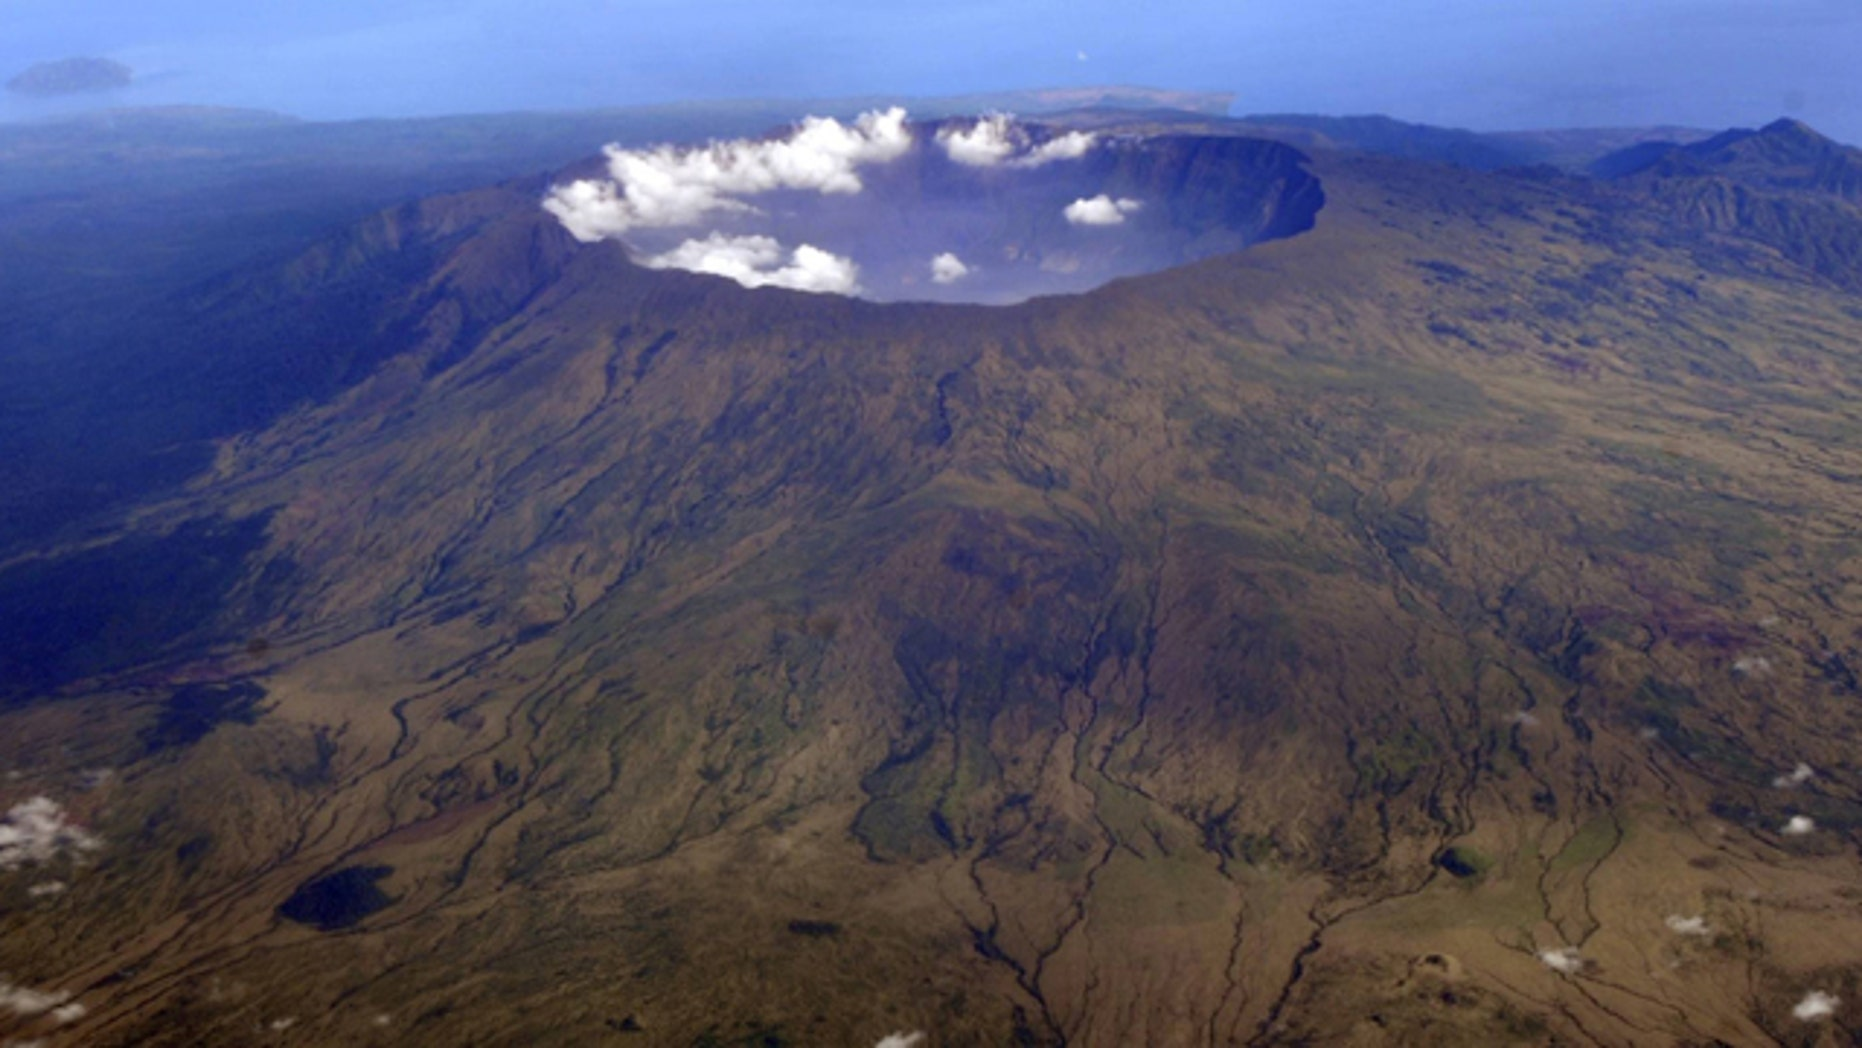 """Oct. 19, 2010"""" Mount Tambora's 10 kilometer wide and 1 kilometer deep volcanic crater, created by the April 1815 eruption, is shown. Bold farmers routinely ignore orders to evacuate the slopes of live volcanos in Indonesia, but those on Tambora took no chances when history's deadliest mountain rumbled ominously this month, Sept., 2011."""